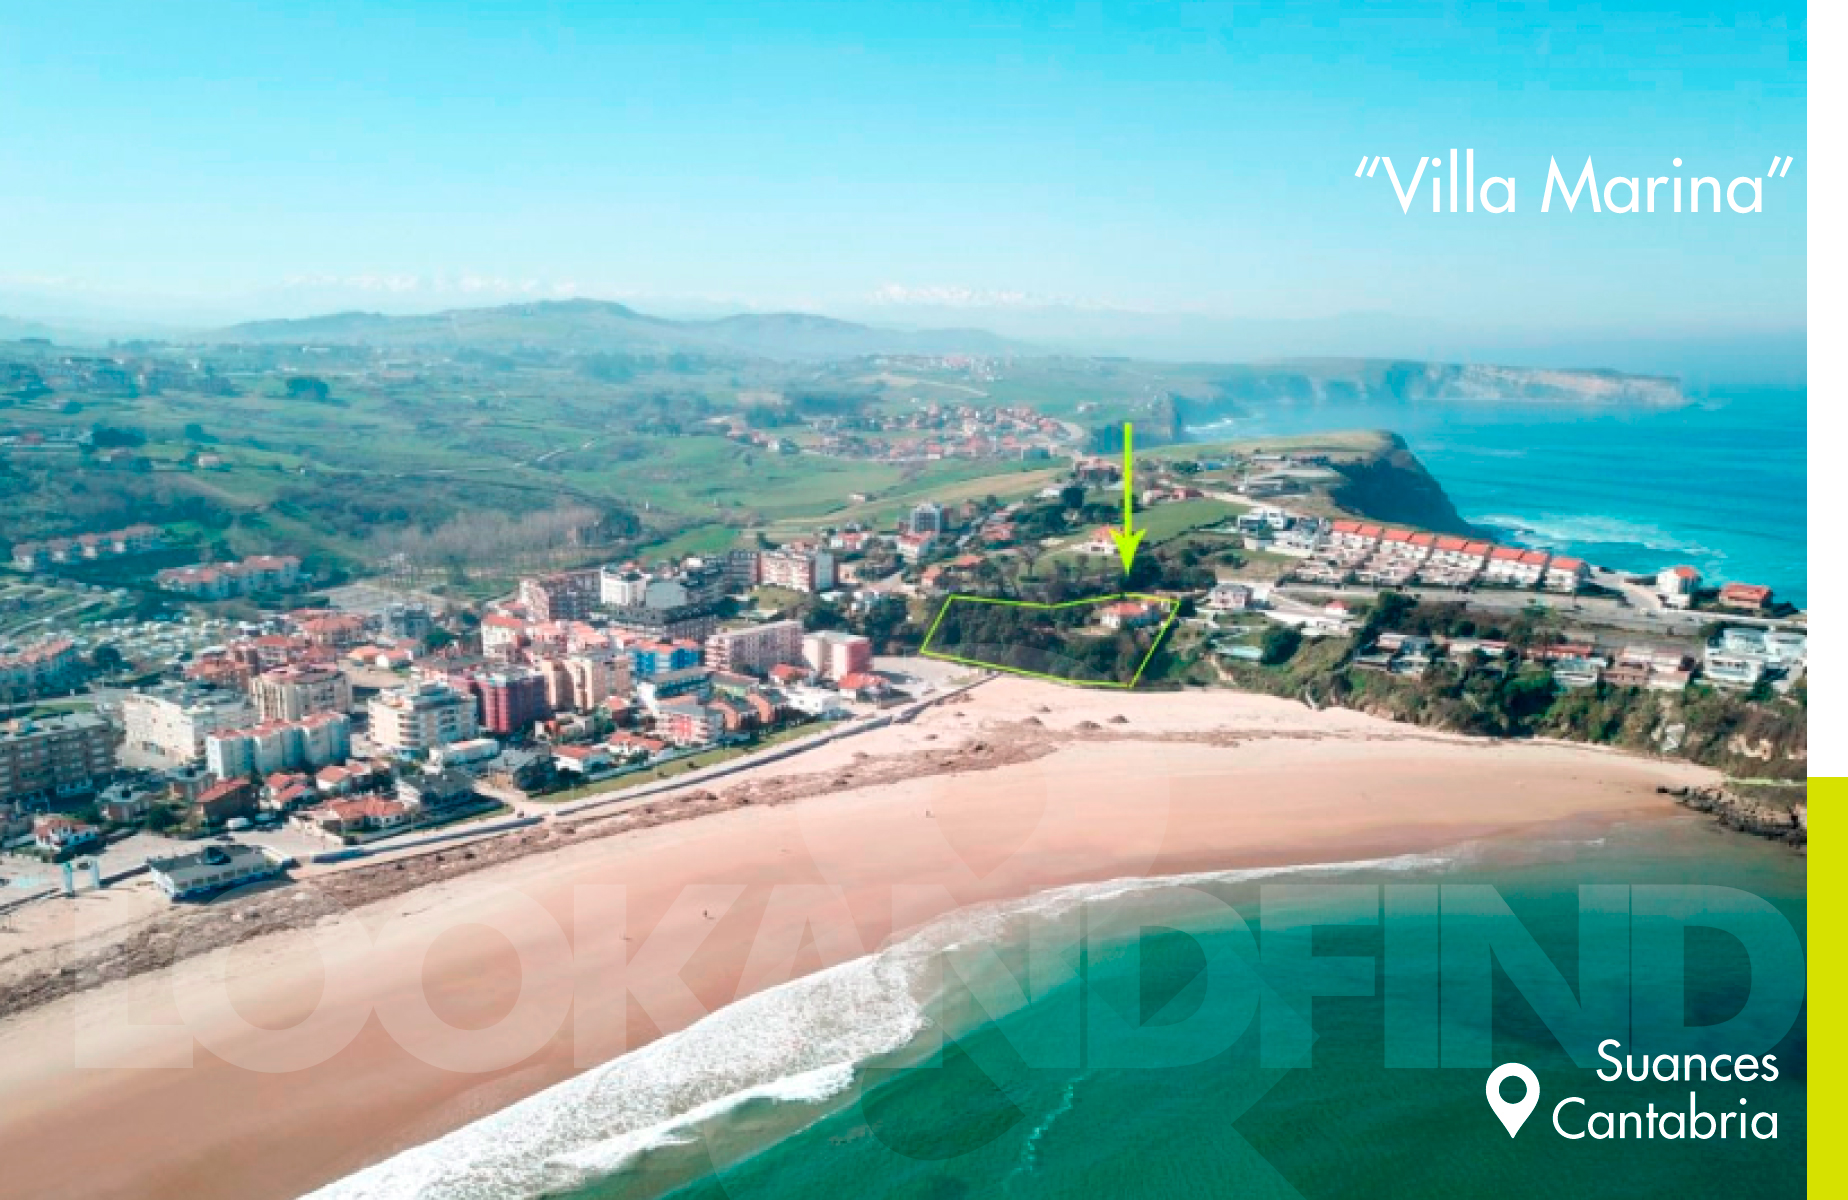 villa-suances-lookandfind